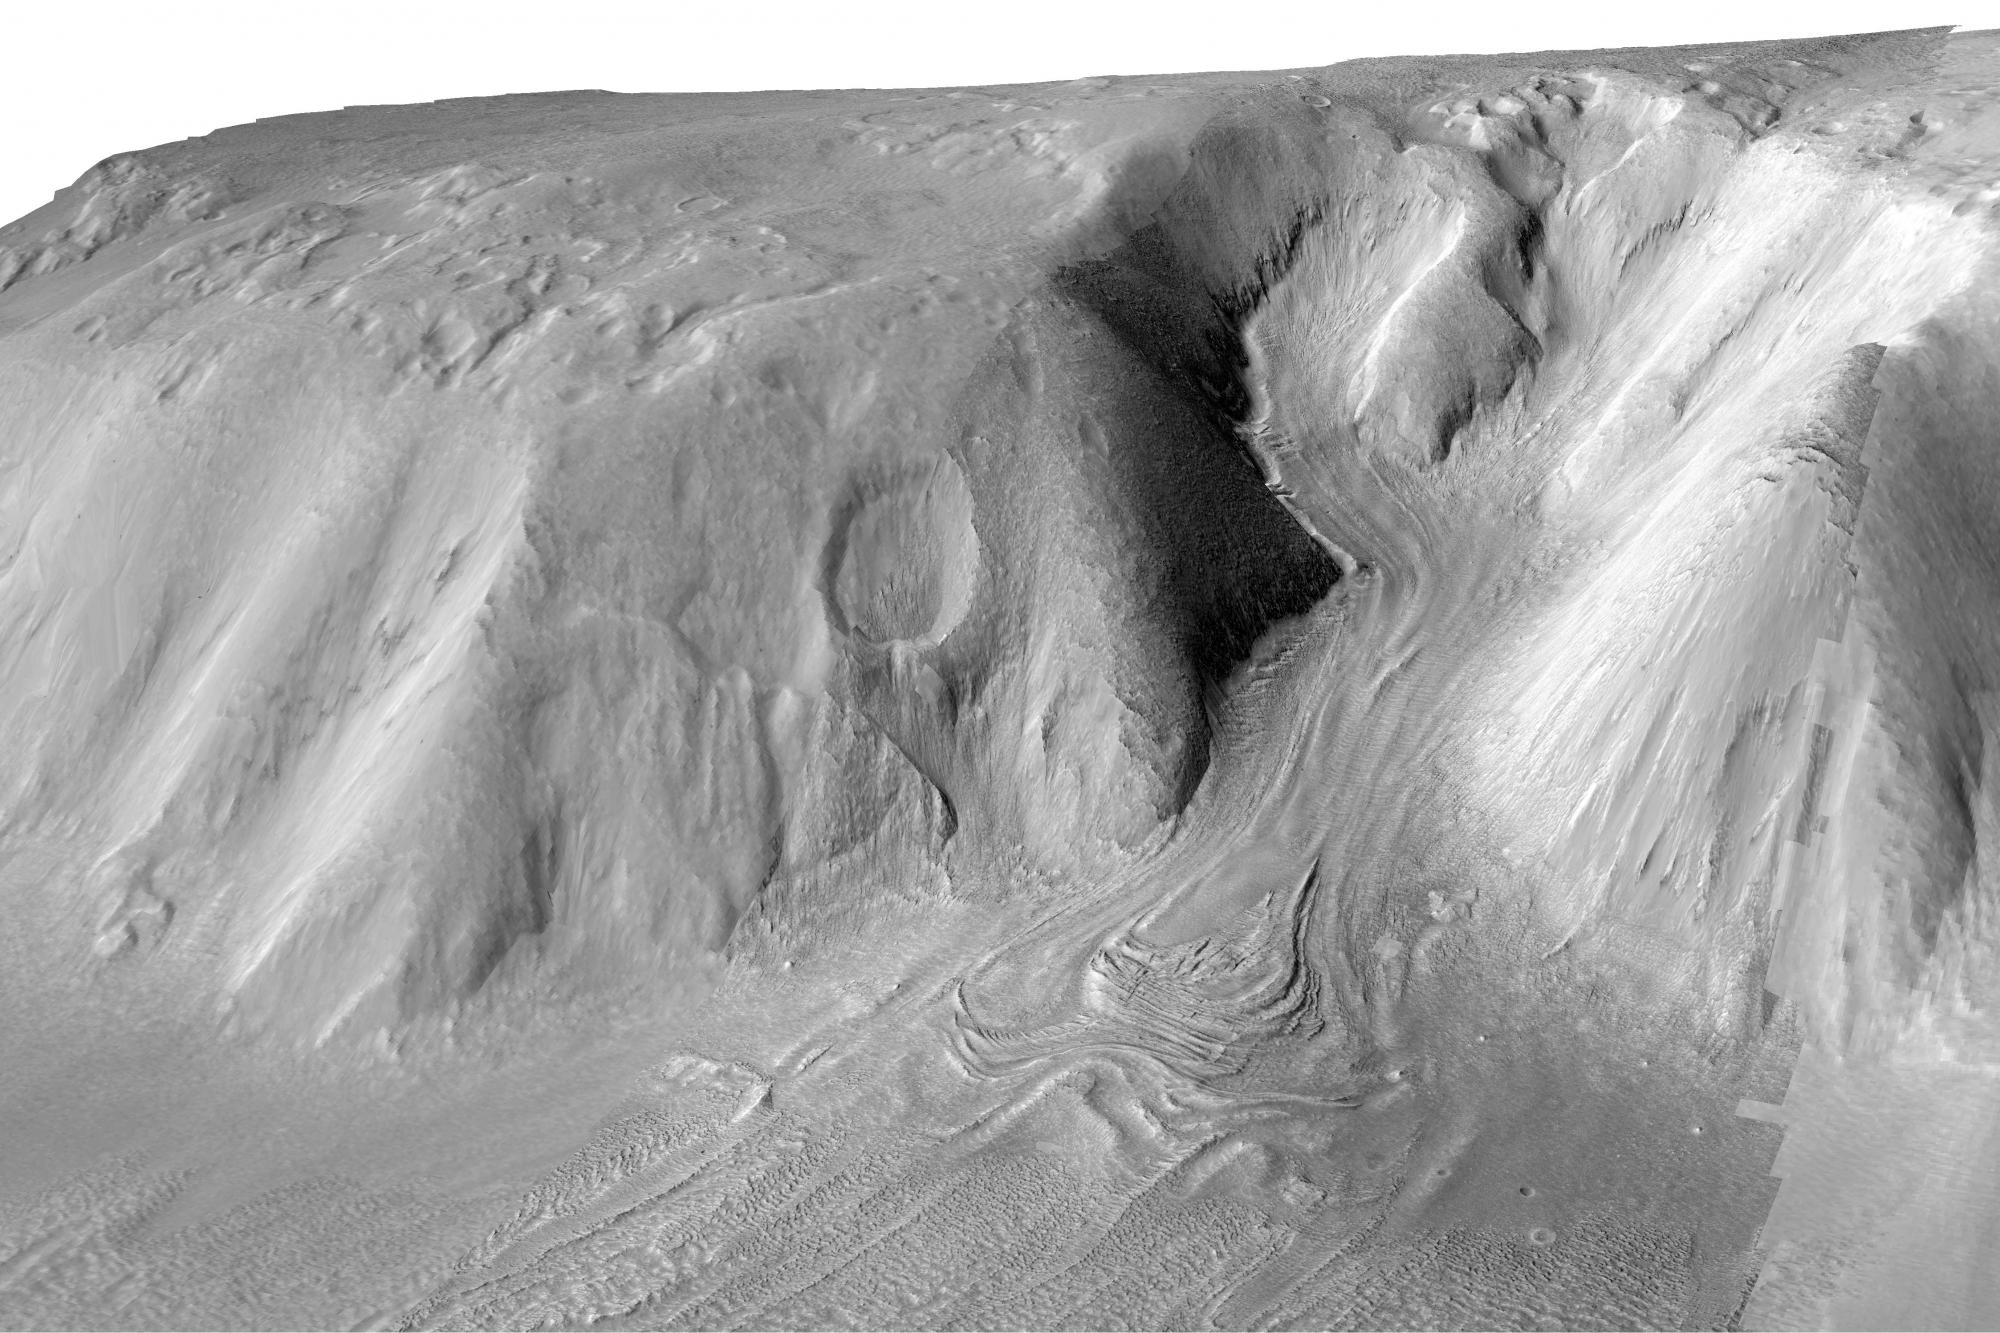 """The folds, compressional ridges and flow lines on this debris-covered glacier on Mars are strikingly similar to the appearance of features on Sourdough Peak. Planetary scientists often turn to """"Earth analogs"""" to understand what shapes landscapes on other"""